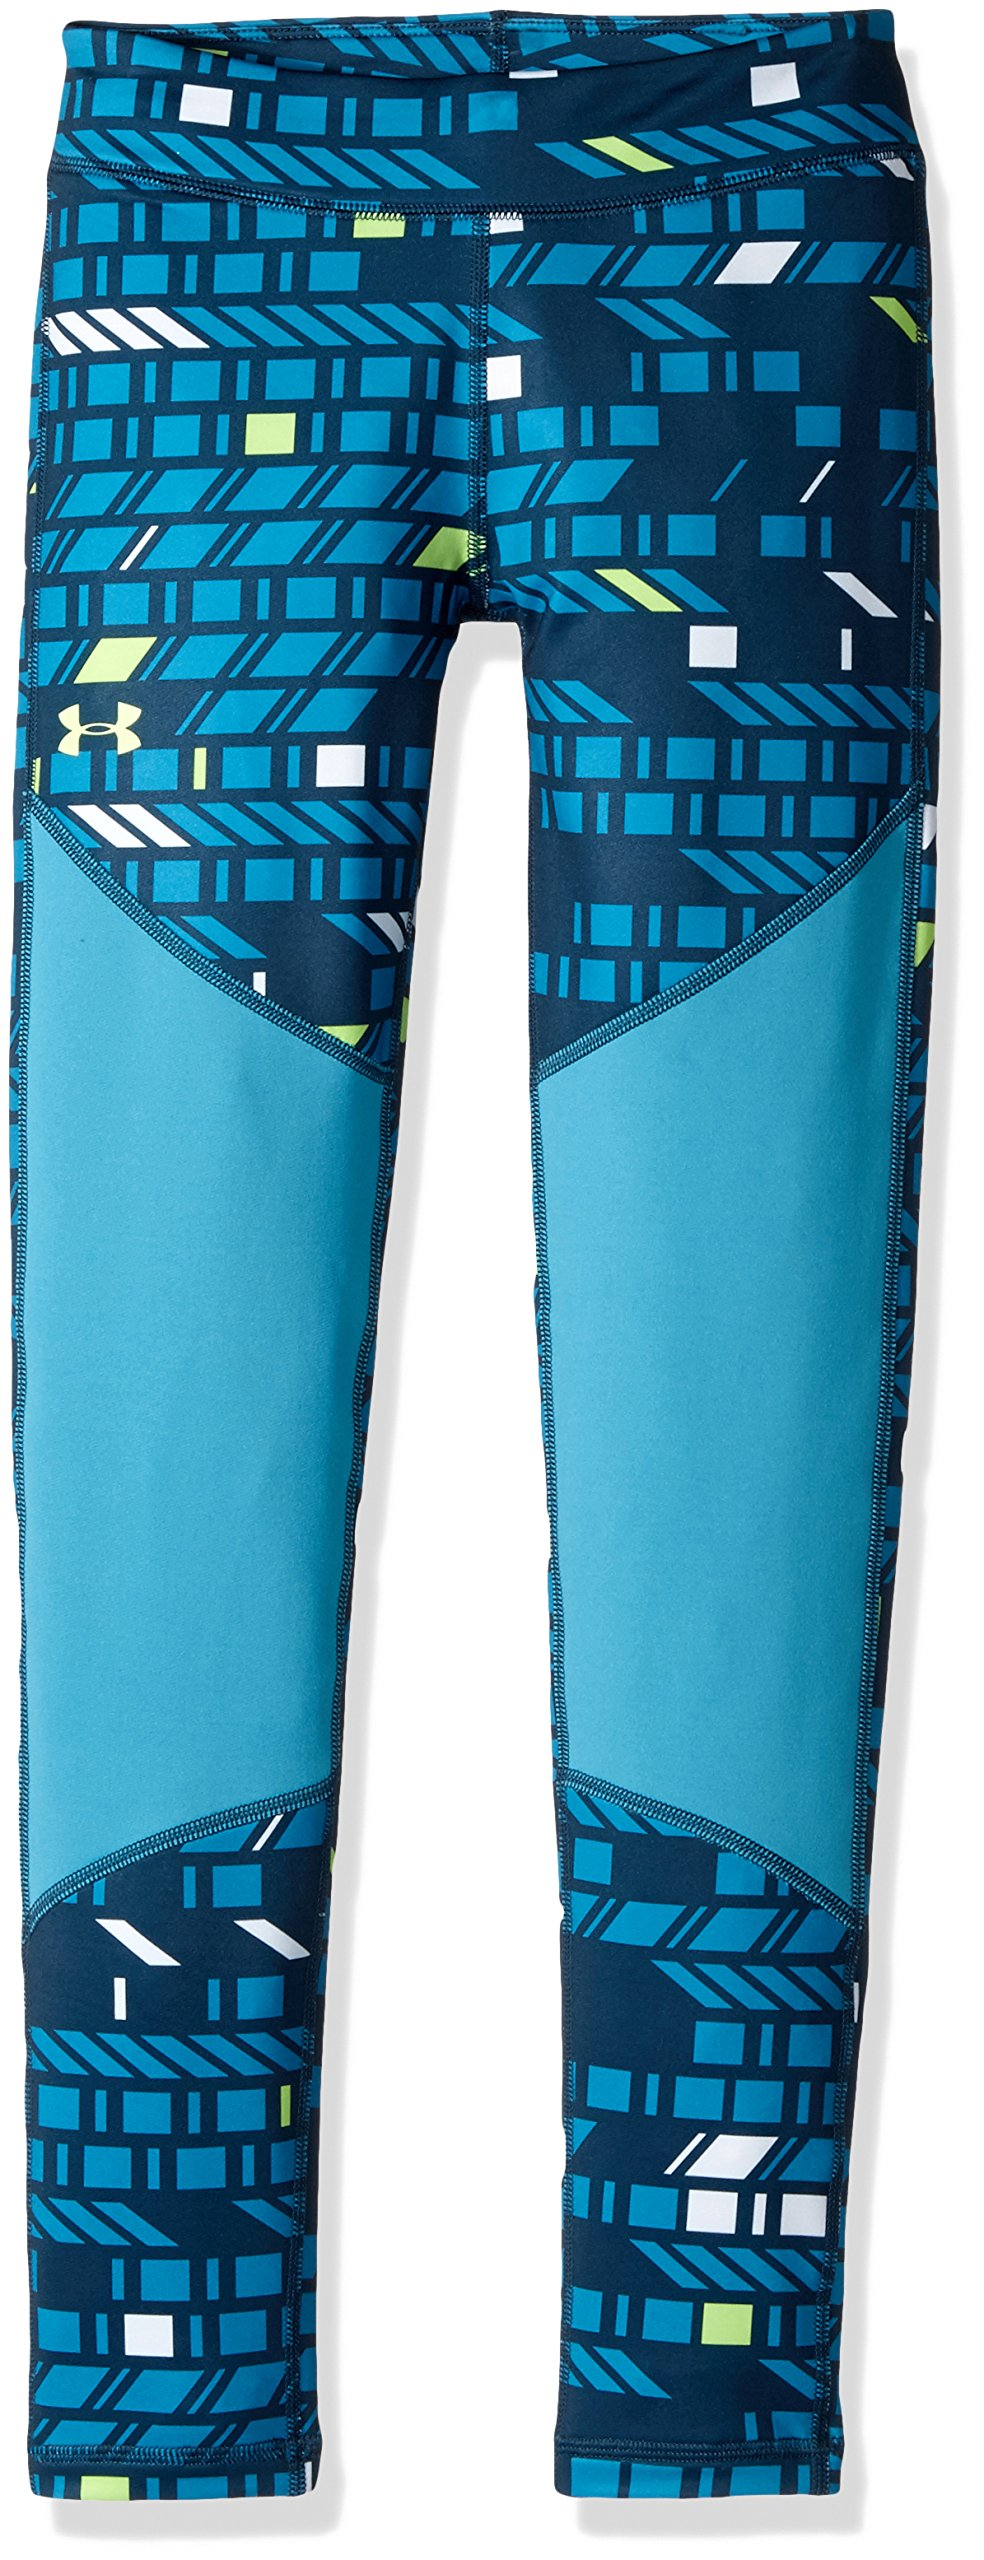 Under Armour Girls' ColdGear Novelty Leggings,True Ink (918)/Quirky Lime, Youth X-Large